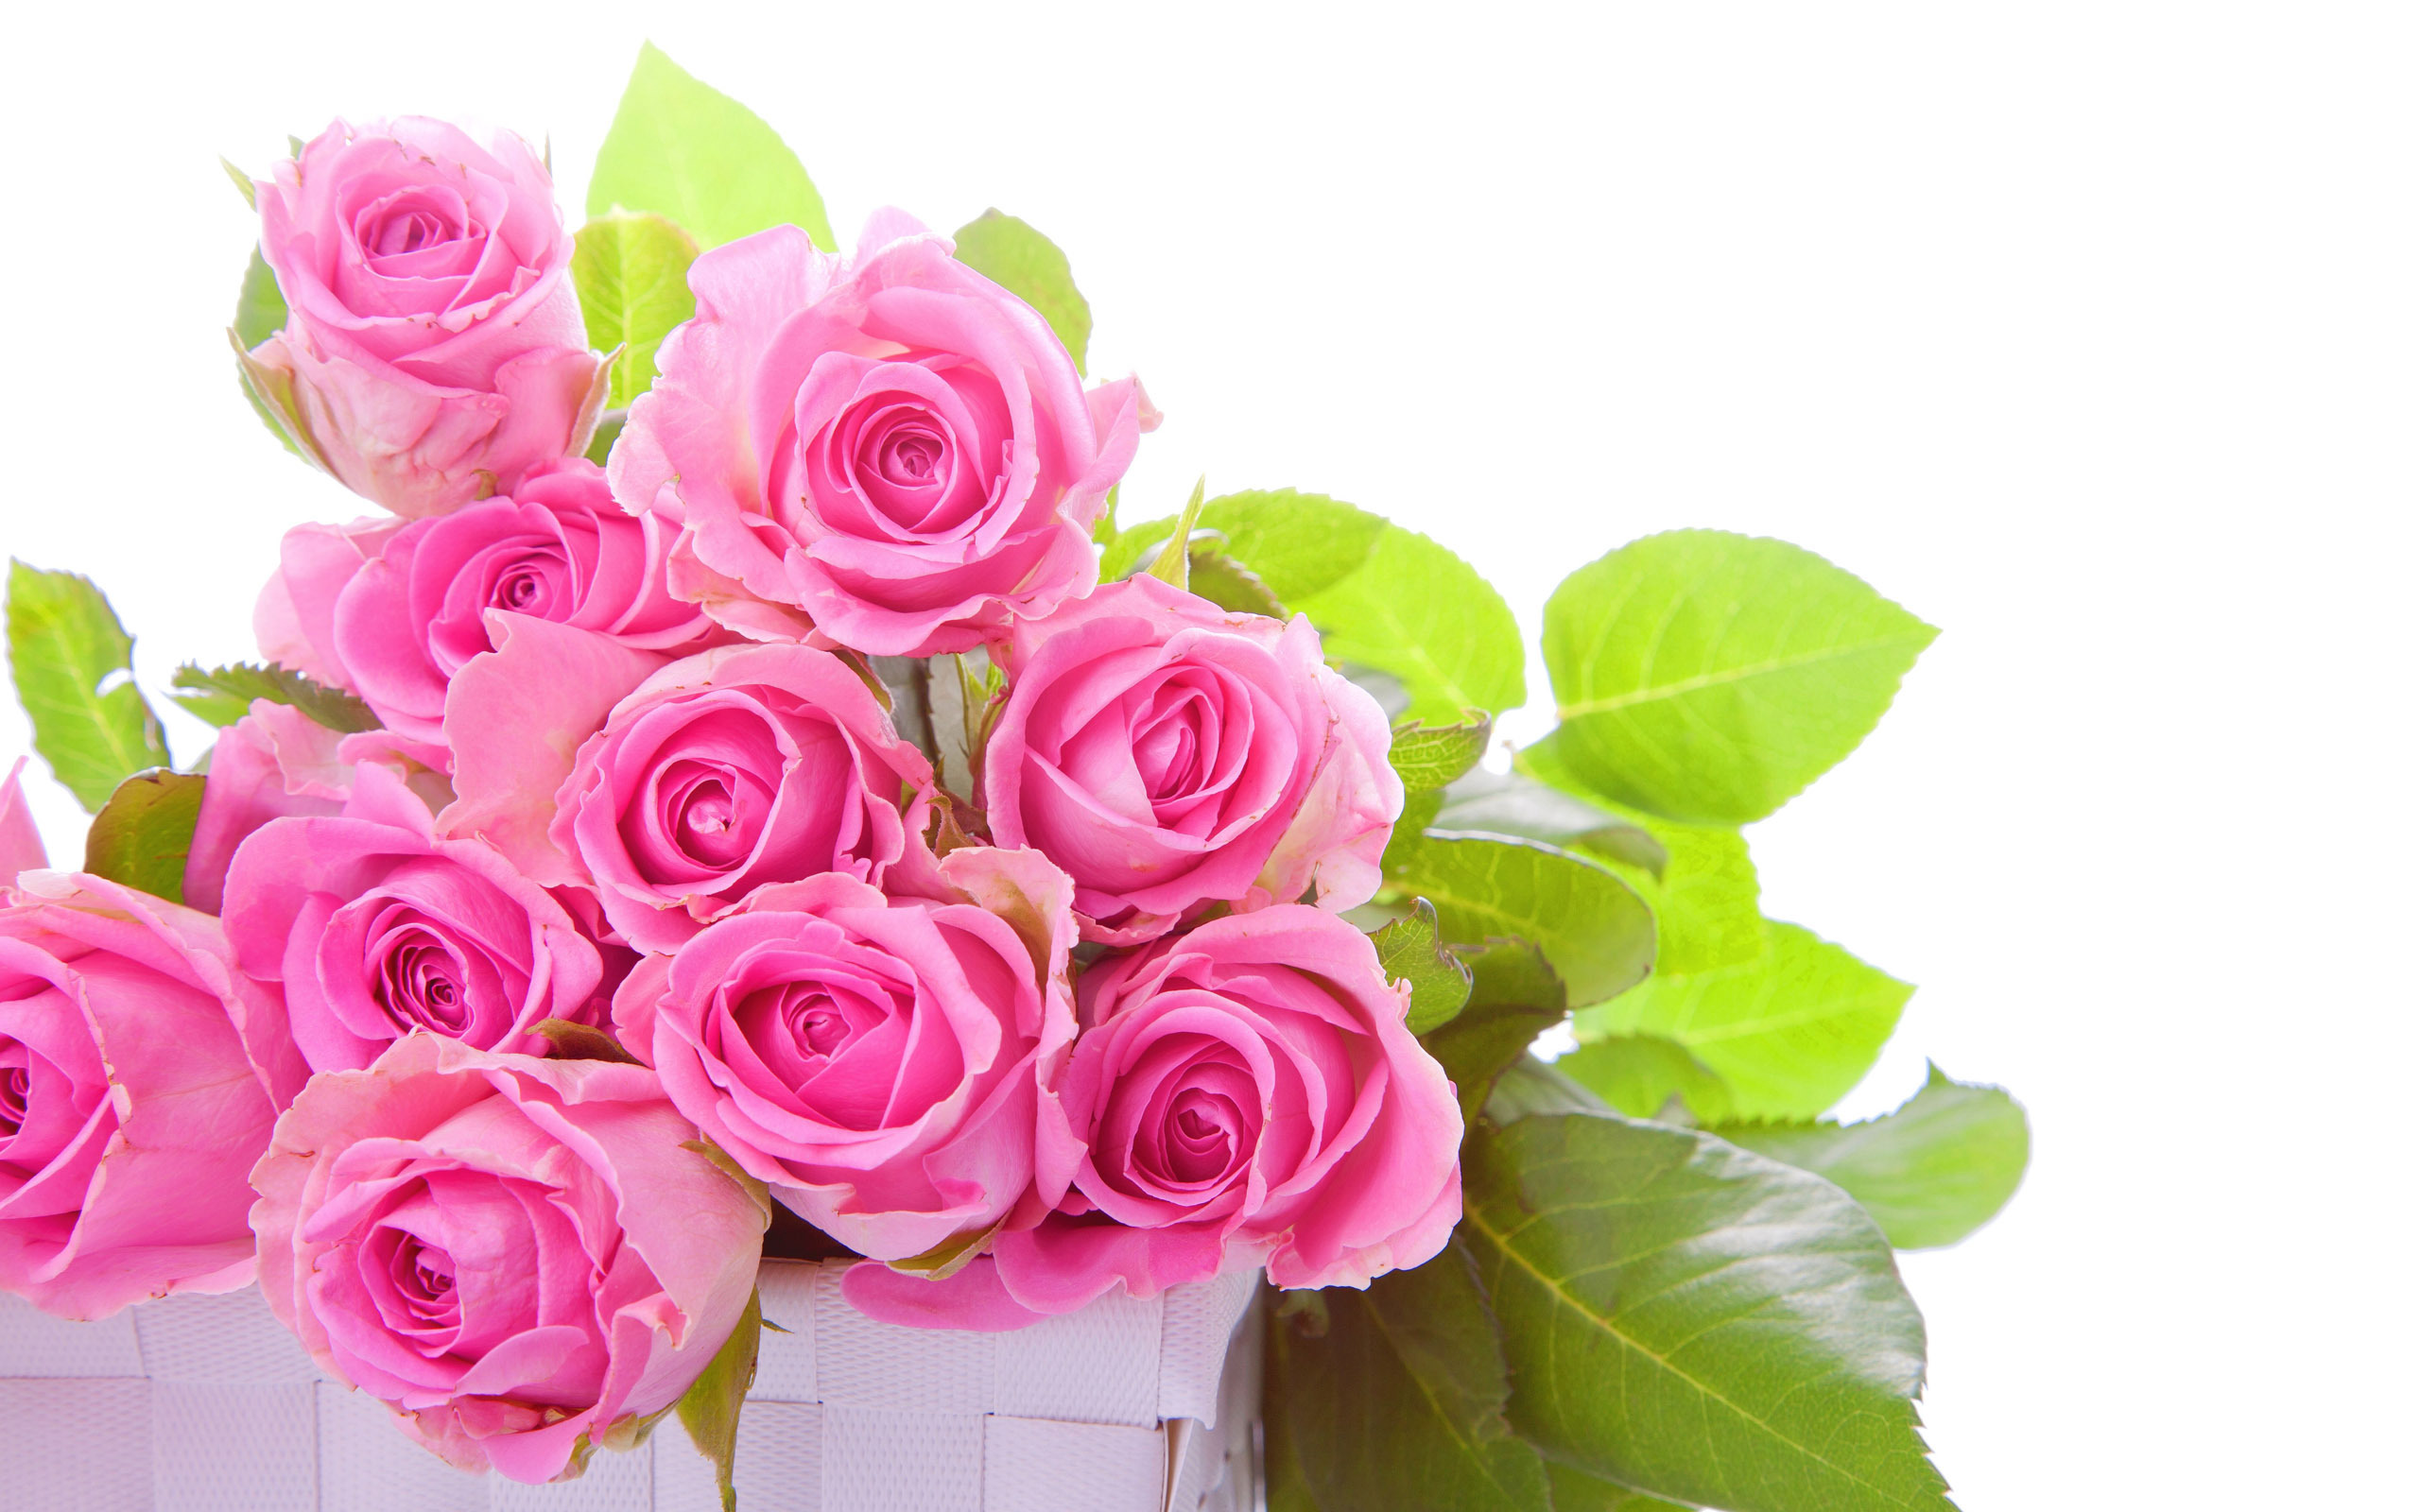 Pink rose pictures download free pixelstalk pink rose flower images pictures hd wallpapers izmirmasajfo